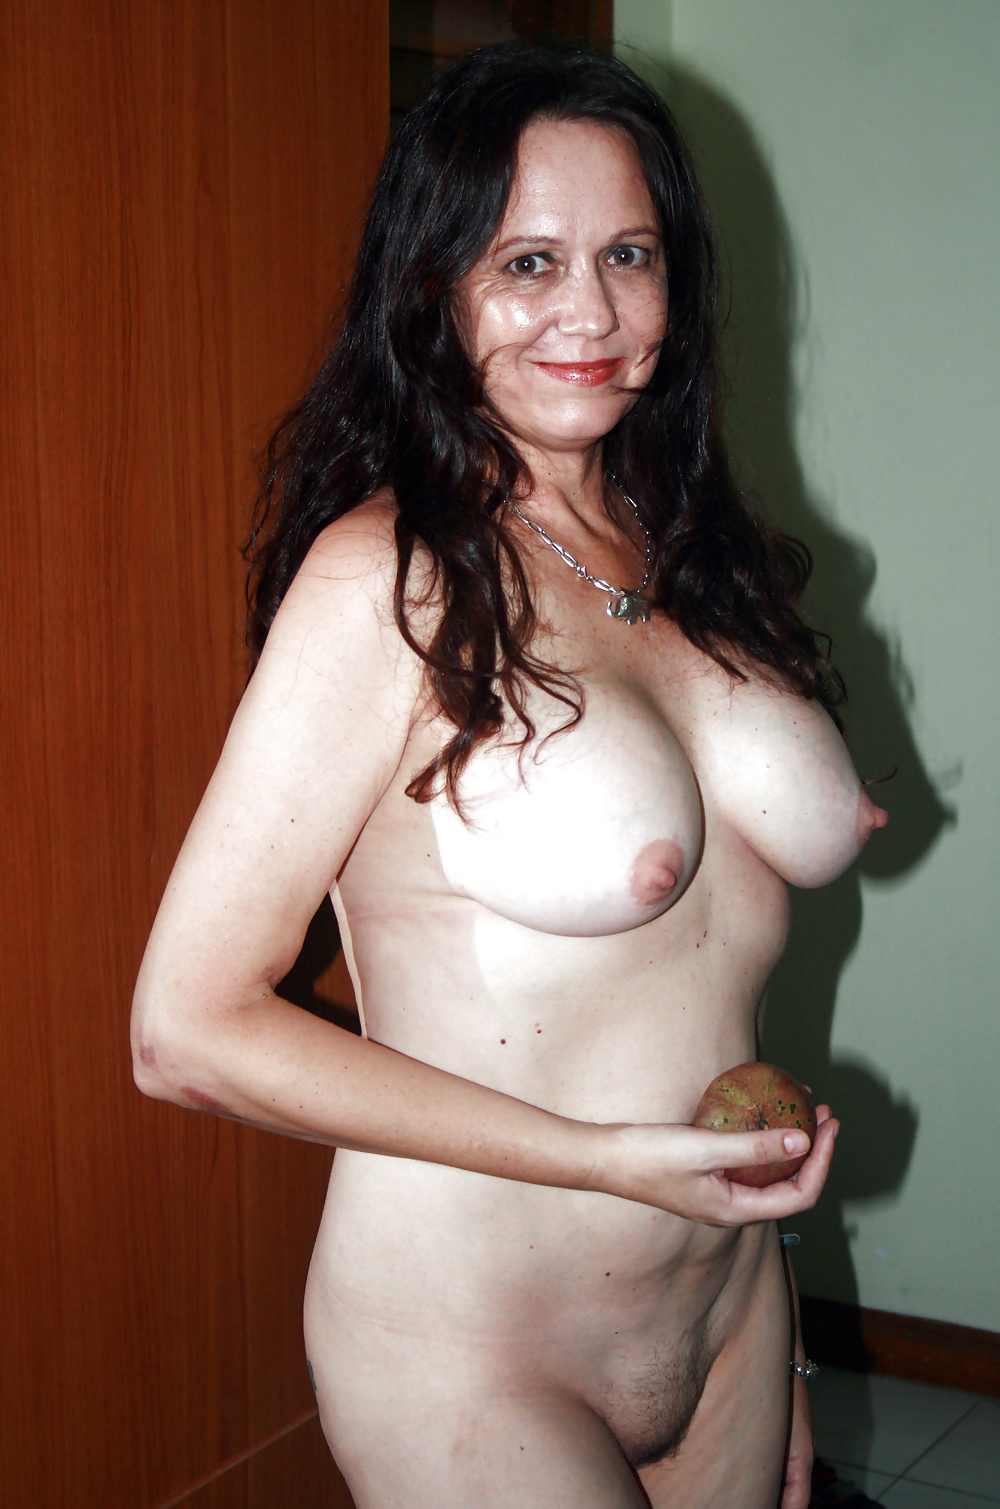 Hot South African Girls Naked